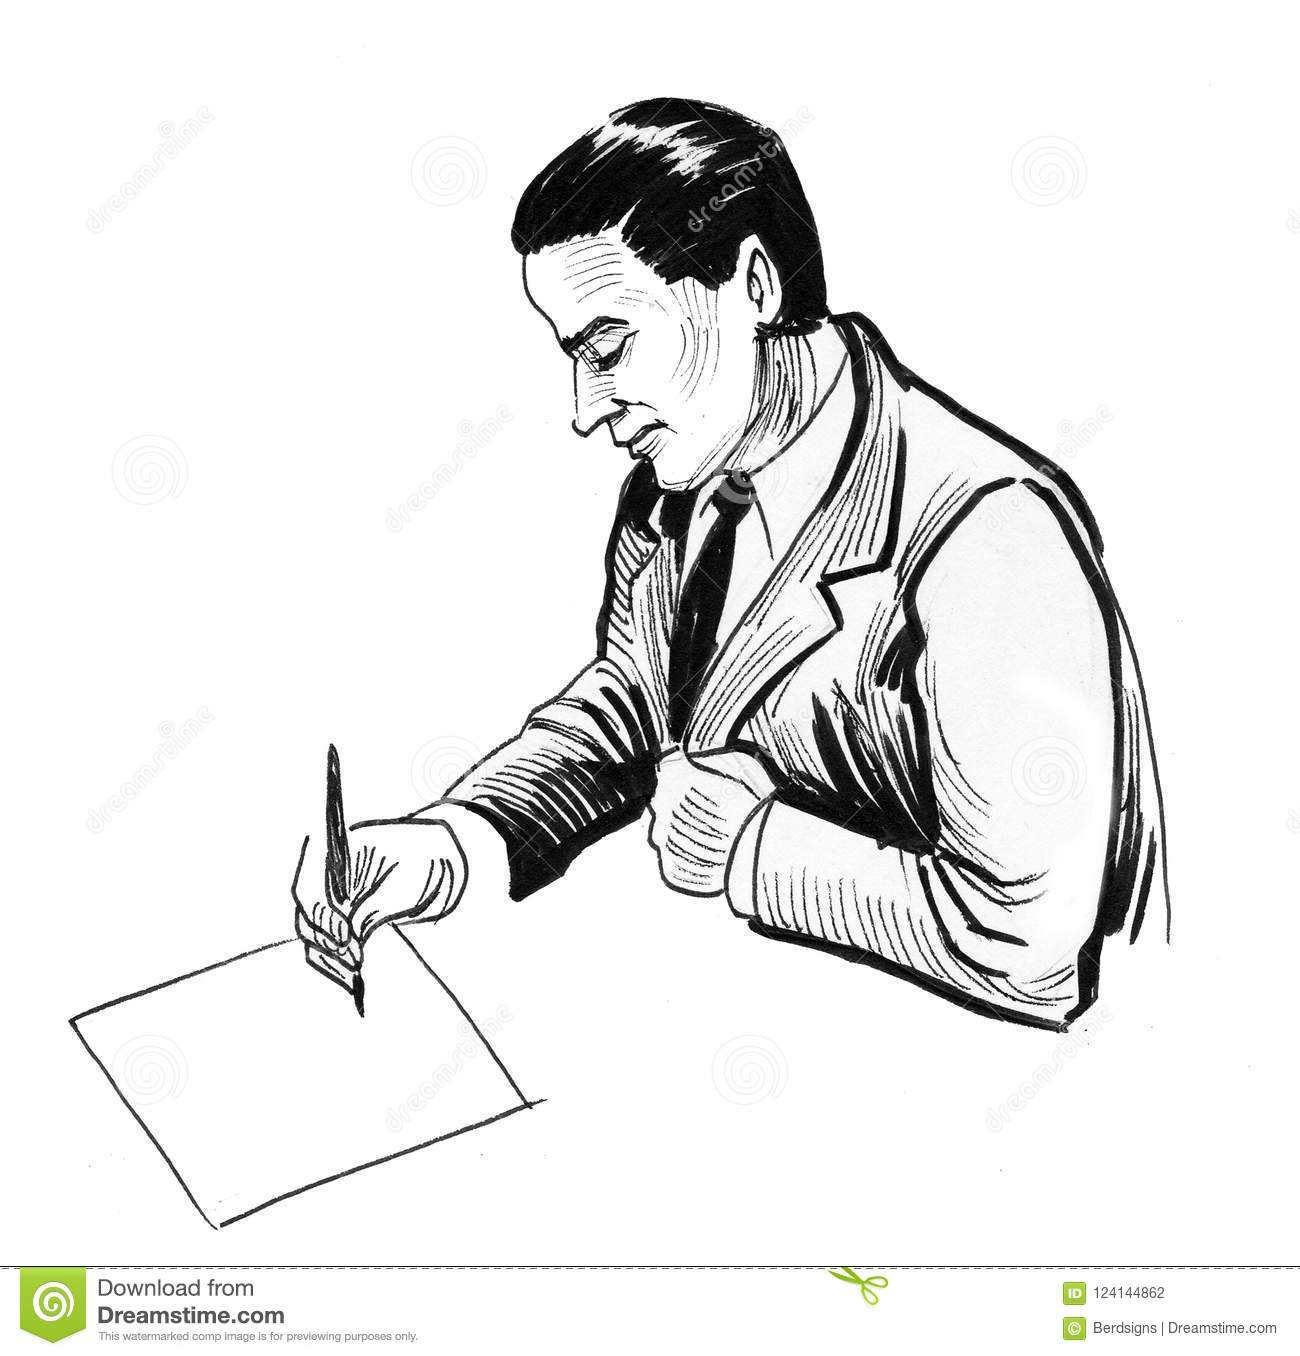 Ink black and white drawing of a man writing on a sheet of paper